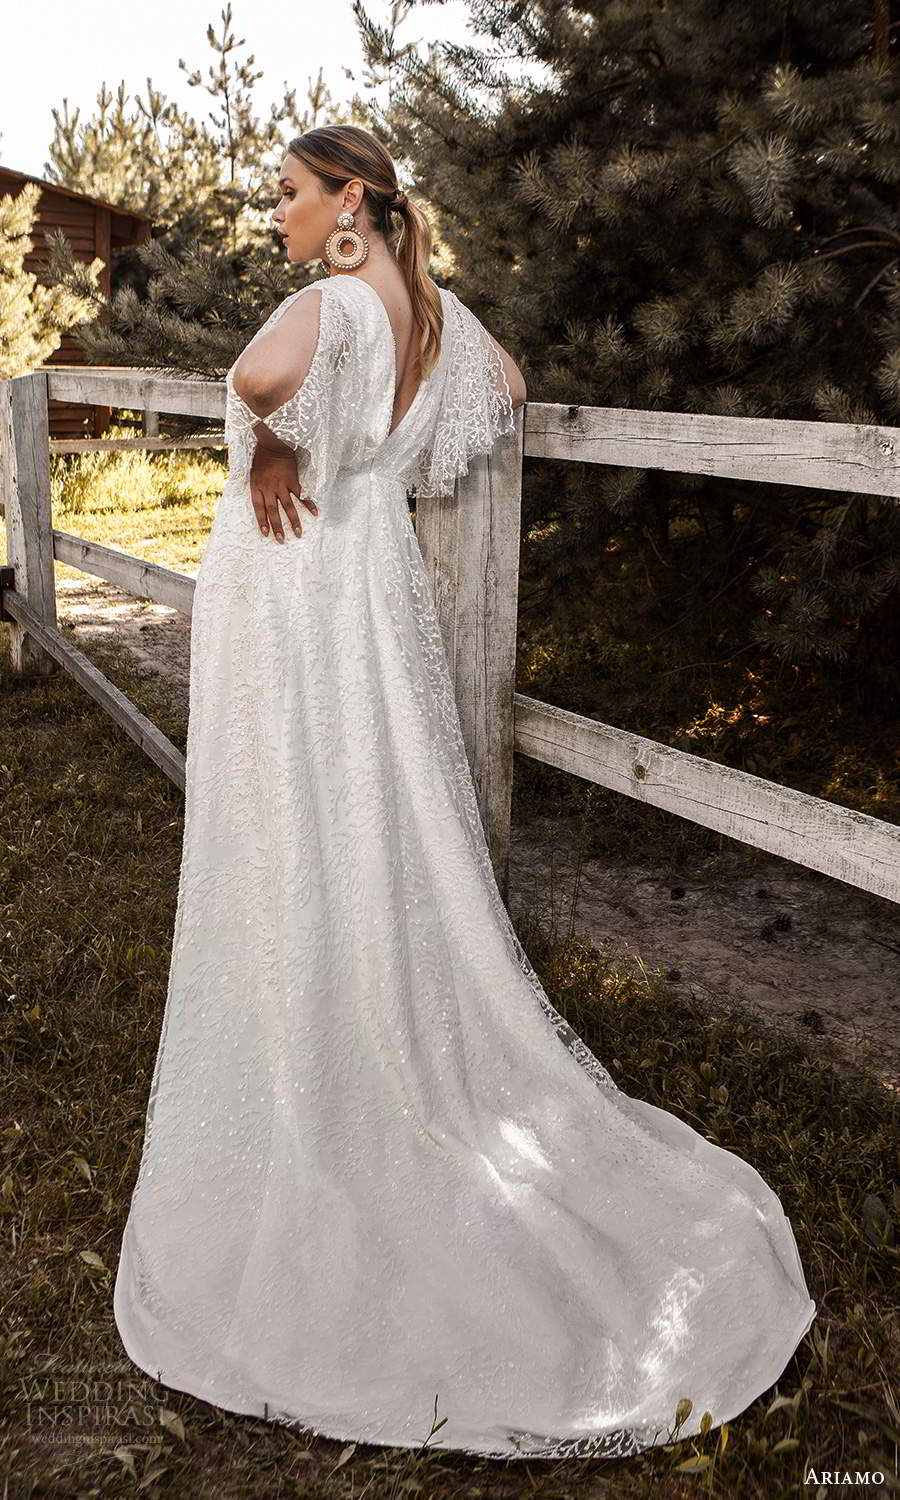 ariamo 2021 plus bridal sheer flutter sleeves v neckline crossover bodice fully embellished column sheath wedding dress chapel train (16) bv